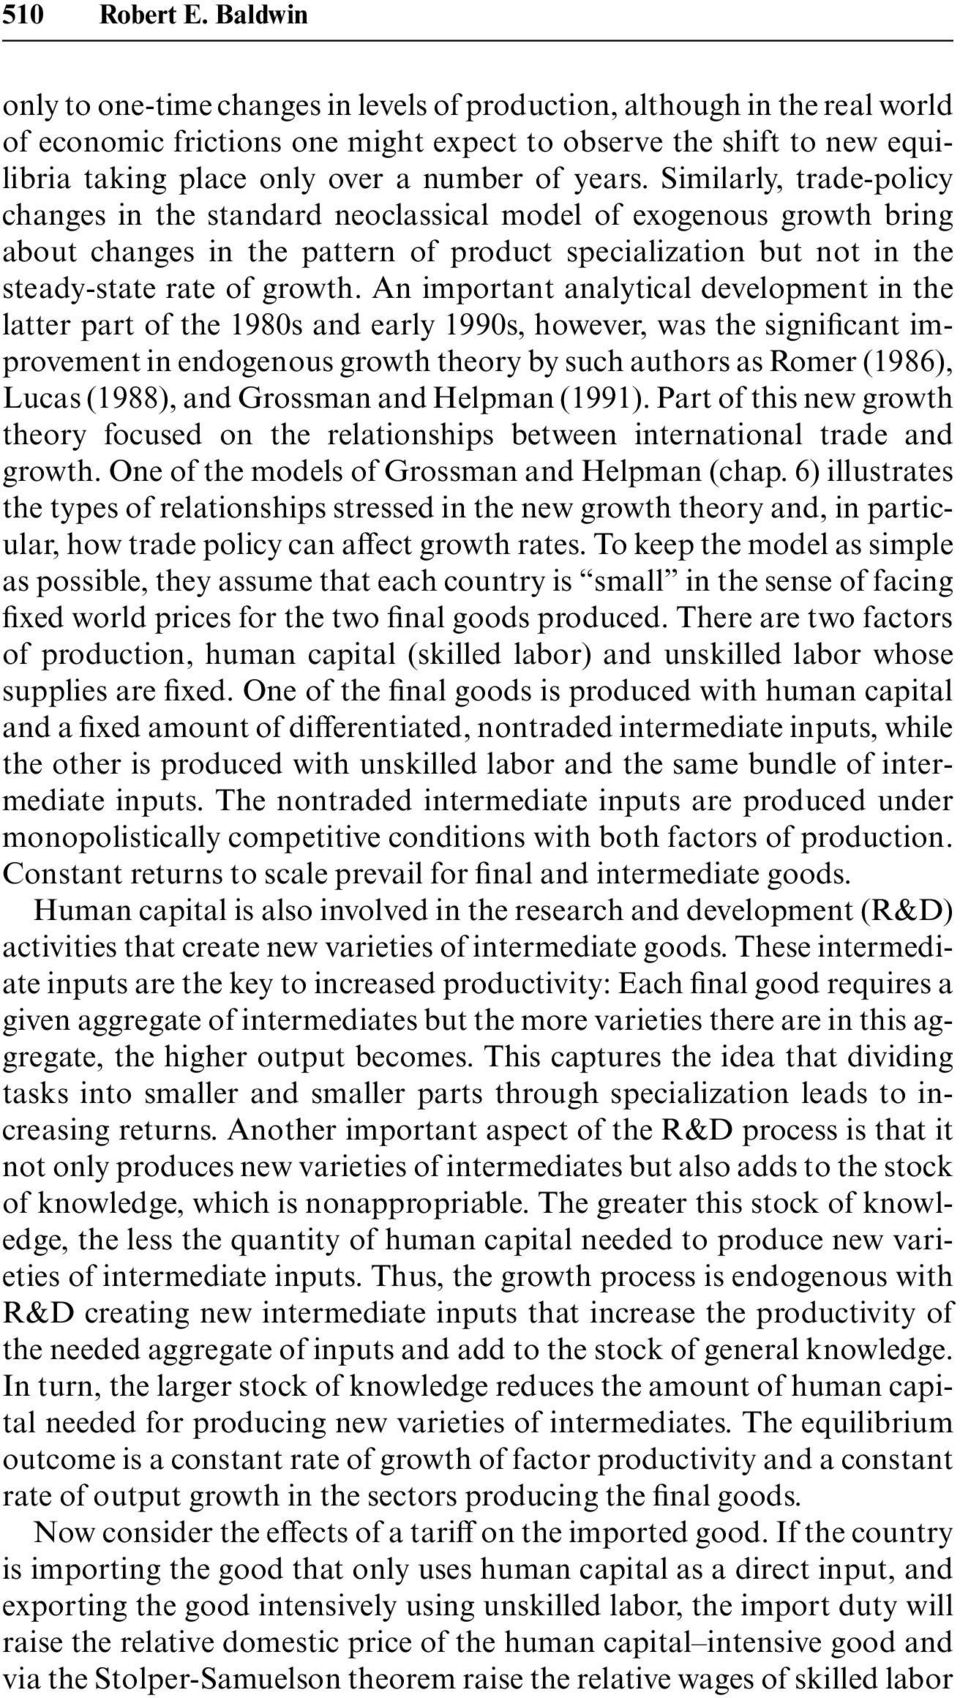 years. Similarly, trade-policy changes in the standard neoclassical model of exogenous growth bring about changes in the pattern of product specialization but not in the steady-state rate of growth.